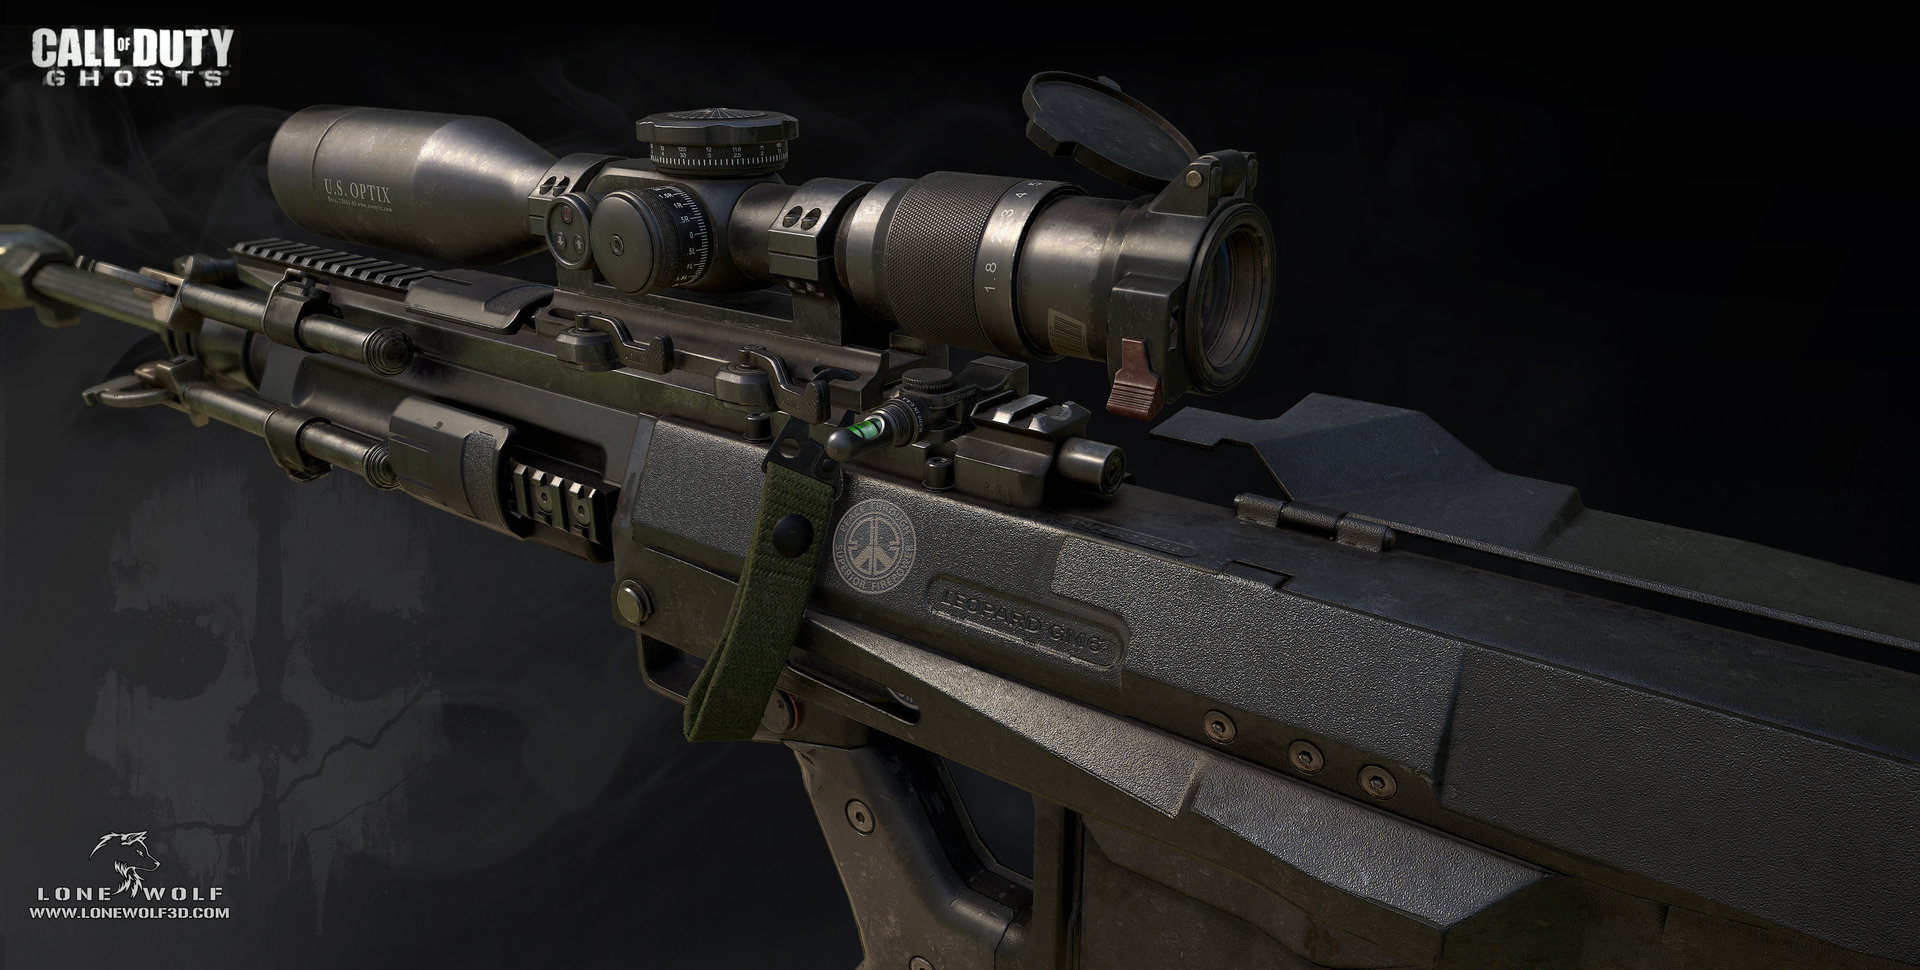 Call of duty ghosts gm6 model 02